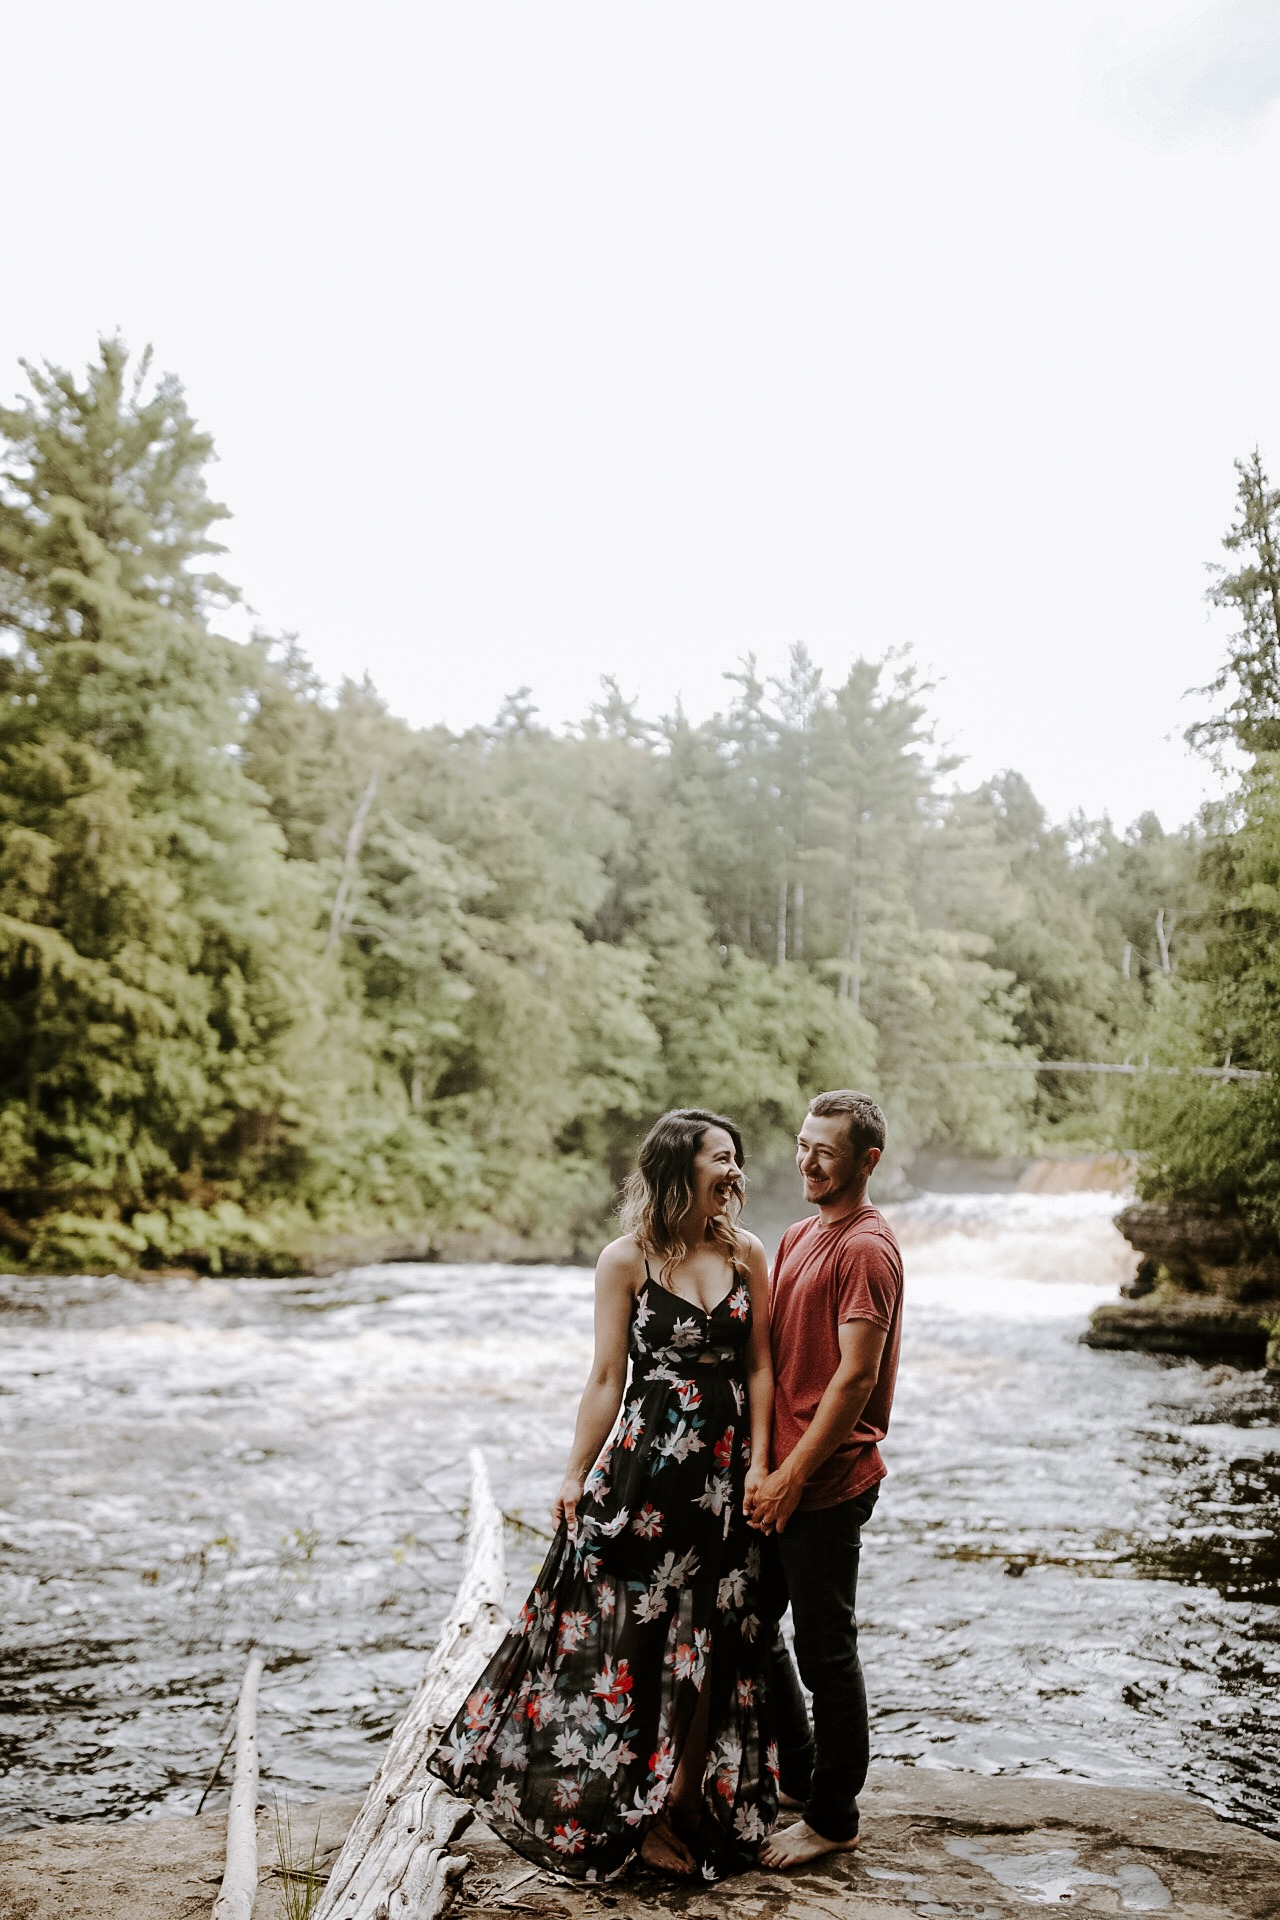 """Welcome Friends! - We're so excited you're here! We are Amanda & Richard- a husband & wife photography team. We call the Upper Peninsula of Michigan or 'the U.P."""" our home & we love getting to live in an area surrounded by so much natural beauty. We also jump at any chance to travel, so no matter where you are we'd love to work with you! When we're not taking pictures, you can find us spoiling our fur-baby Rocky, rewatching The Office on Netflix for the 29th time, trying new restaurants & breweries, or sitting around a bonfire.We've been shooting weddings together since 2012. We are passionate about capturing the 'real' moments. We want to create images that feel like you, images that you can look back on in 40 years & feel transported to the nervous energy before your first look, the swish of your dress on the dance floor, that speech that made you cry. We strive to show up & tell the truth.We also love getting to work with families & seniors! Our motto is the same for these sessions. Nothing is ever perfect- we are all about accepting where we are now & honoring that. Those moments with your new baby in the nursery or the stuffed animal you're kid refuses to go anywhere without won't last. We get excited about capturing the real, the raw, the messy parts of this beautiful life.We'd love to hear more about you, click the Contact button at the top to get in touch!*photo by the talented Steph Pickard"""